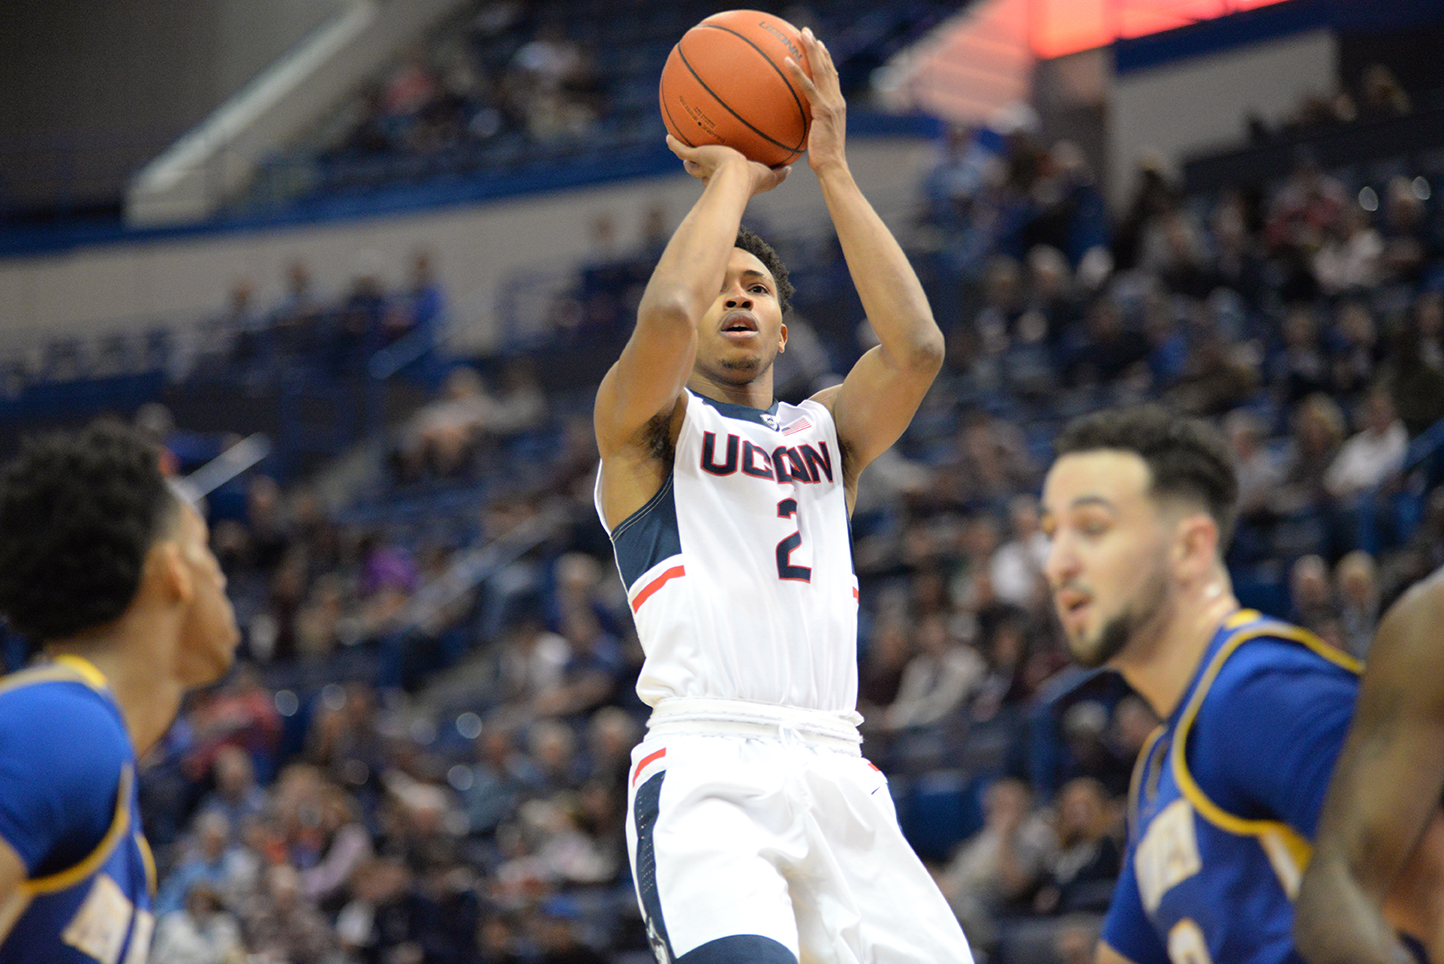 UConn freshman point guard Jalen Adams takes a shot during the Huskies' exhibition game against the University of New Haven at Gampel Pavilion in Storrs, Connecticut on Saturday, Nov. 7, 2015. (Ashley Maher/The Daily Campus)